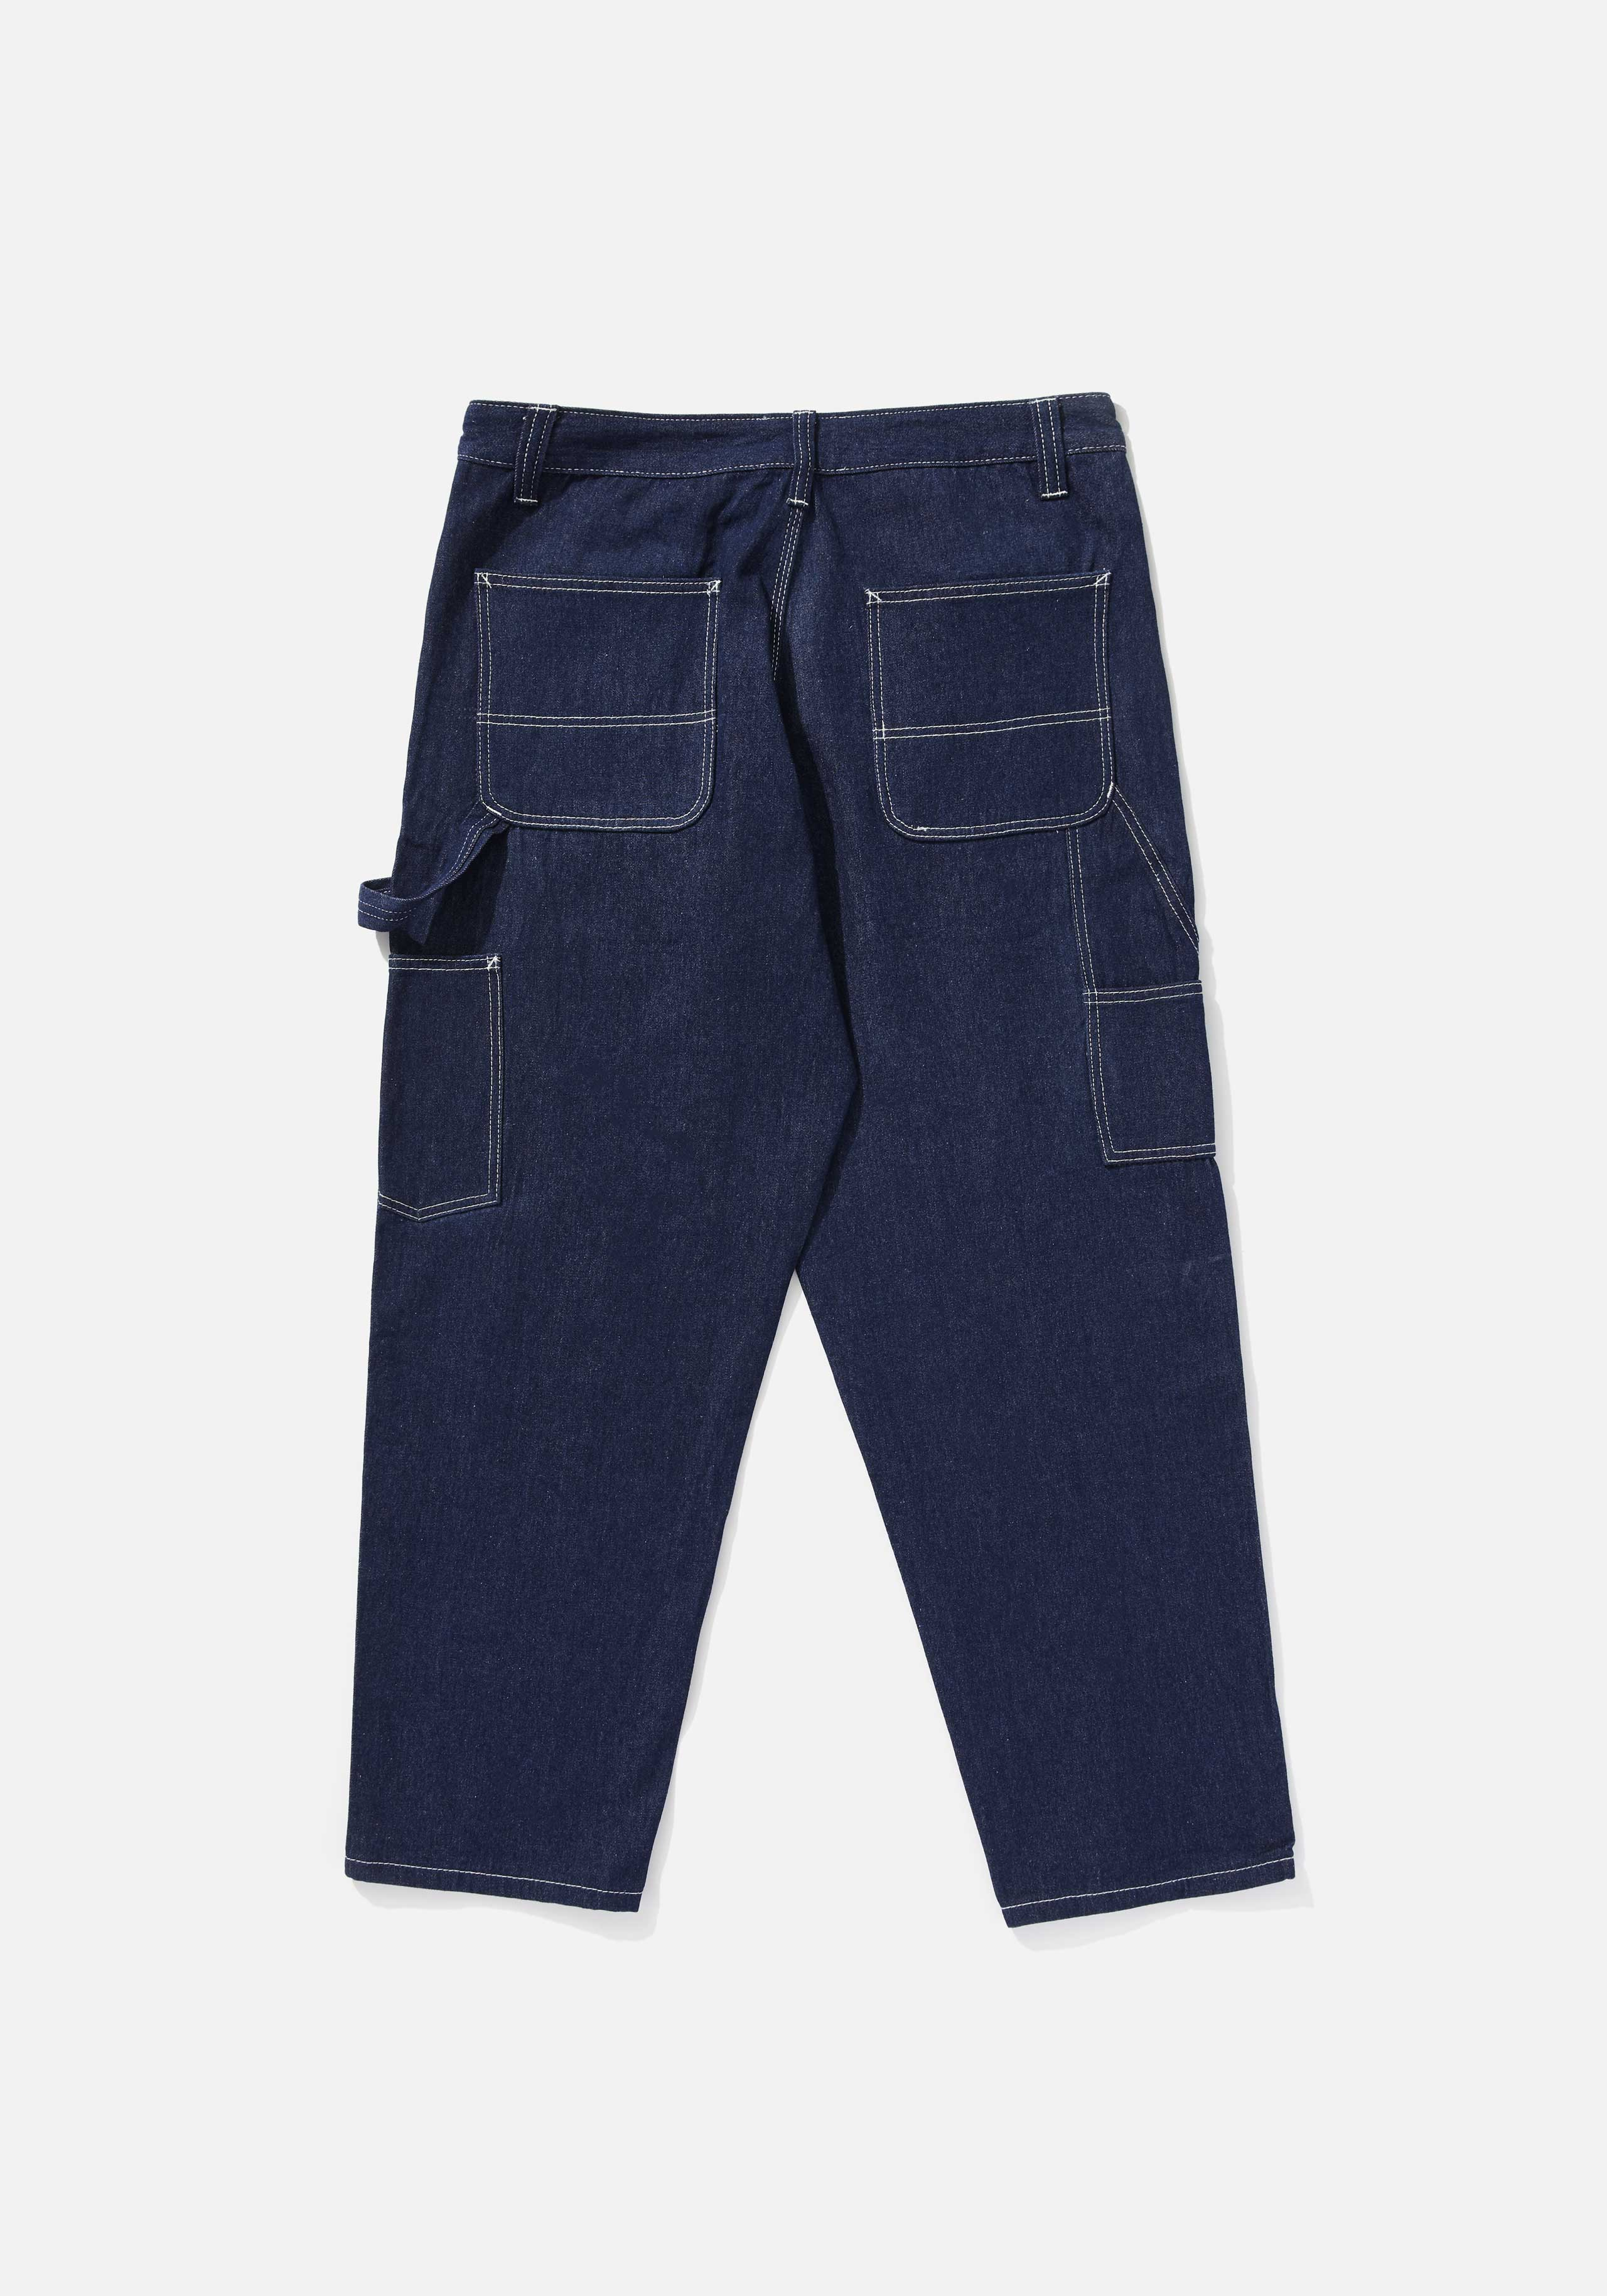 mki denim carpenter jeans 2